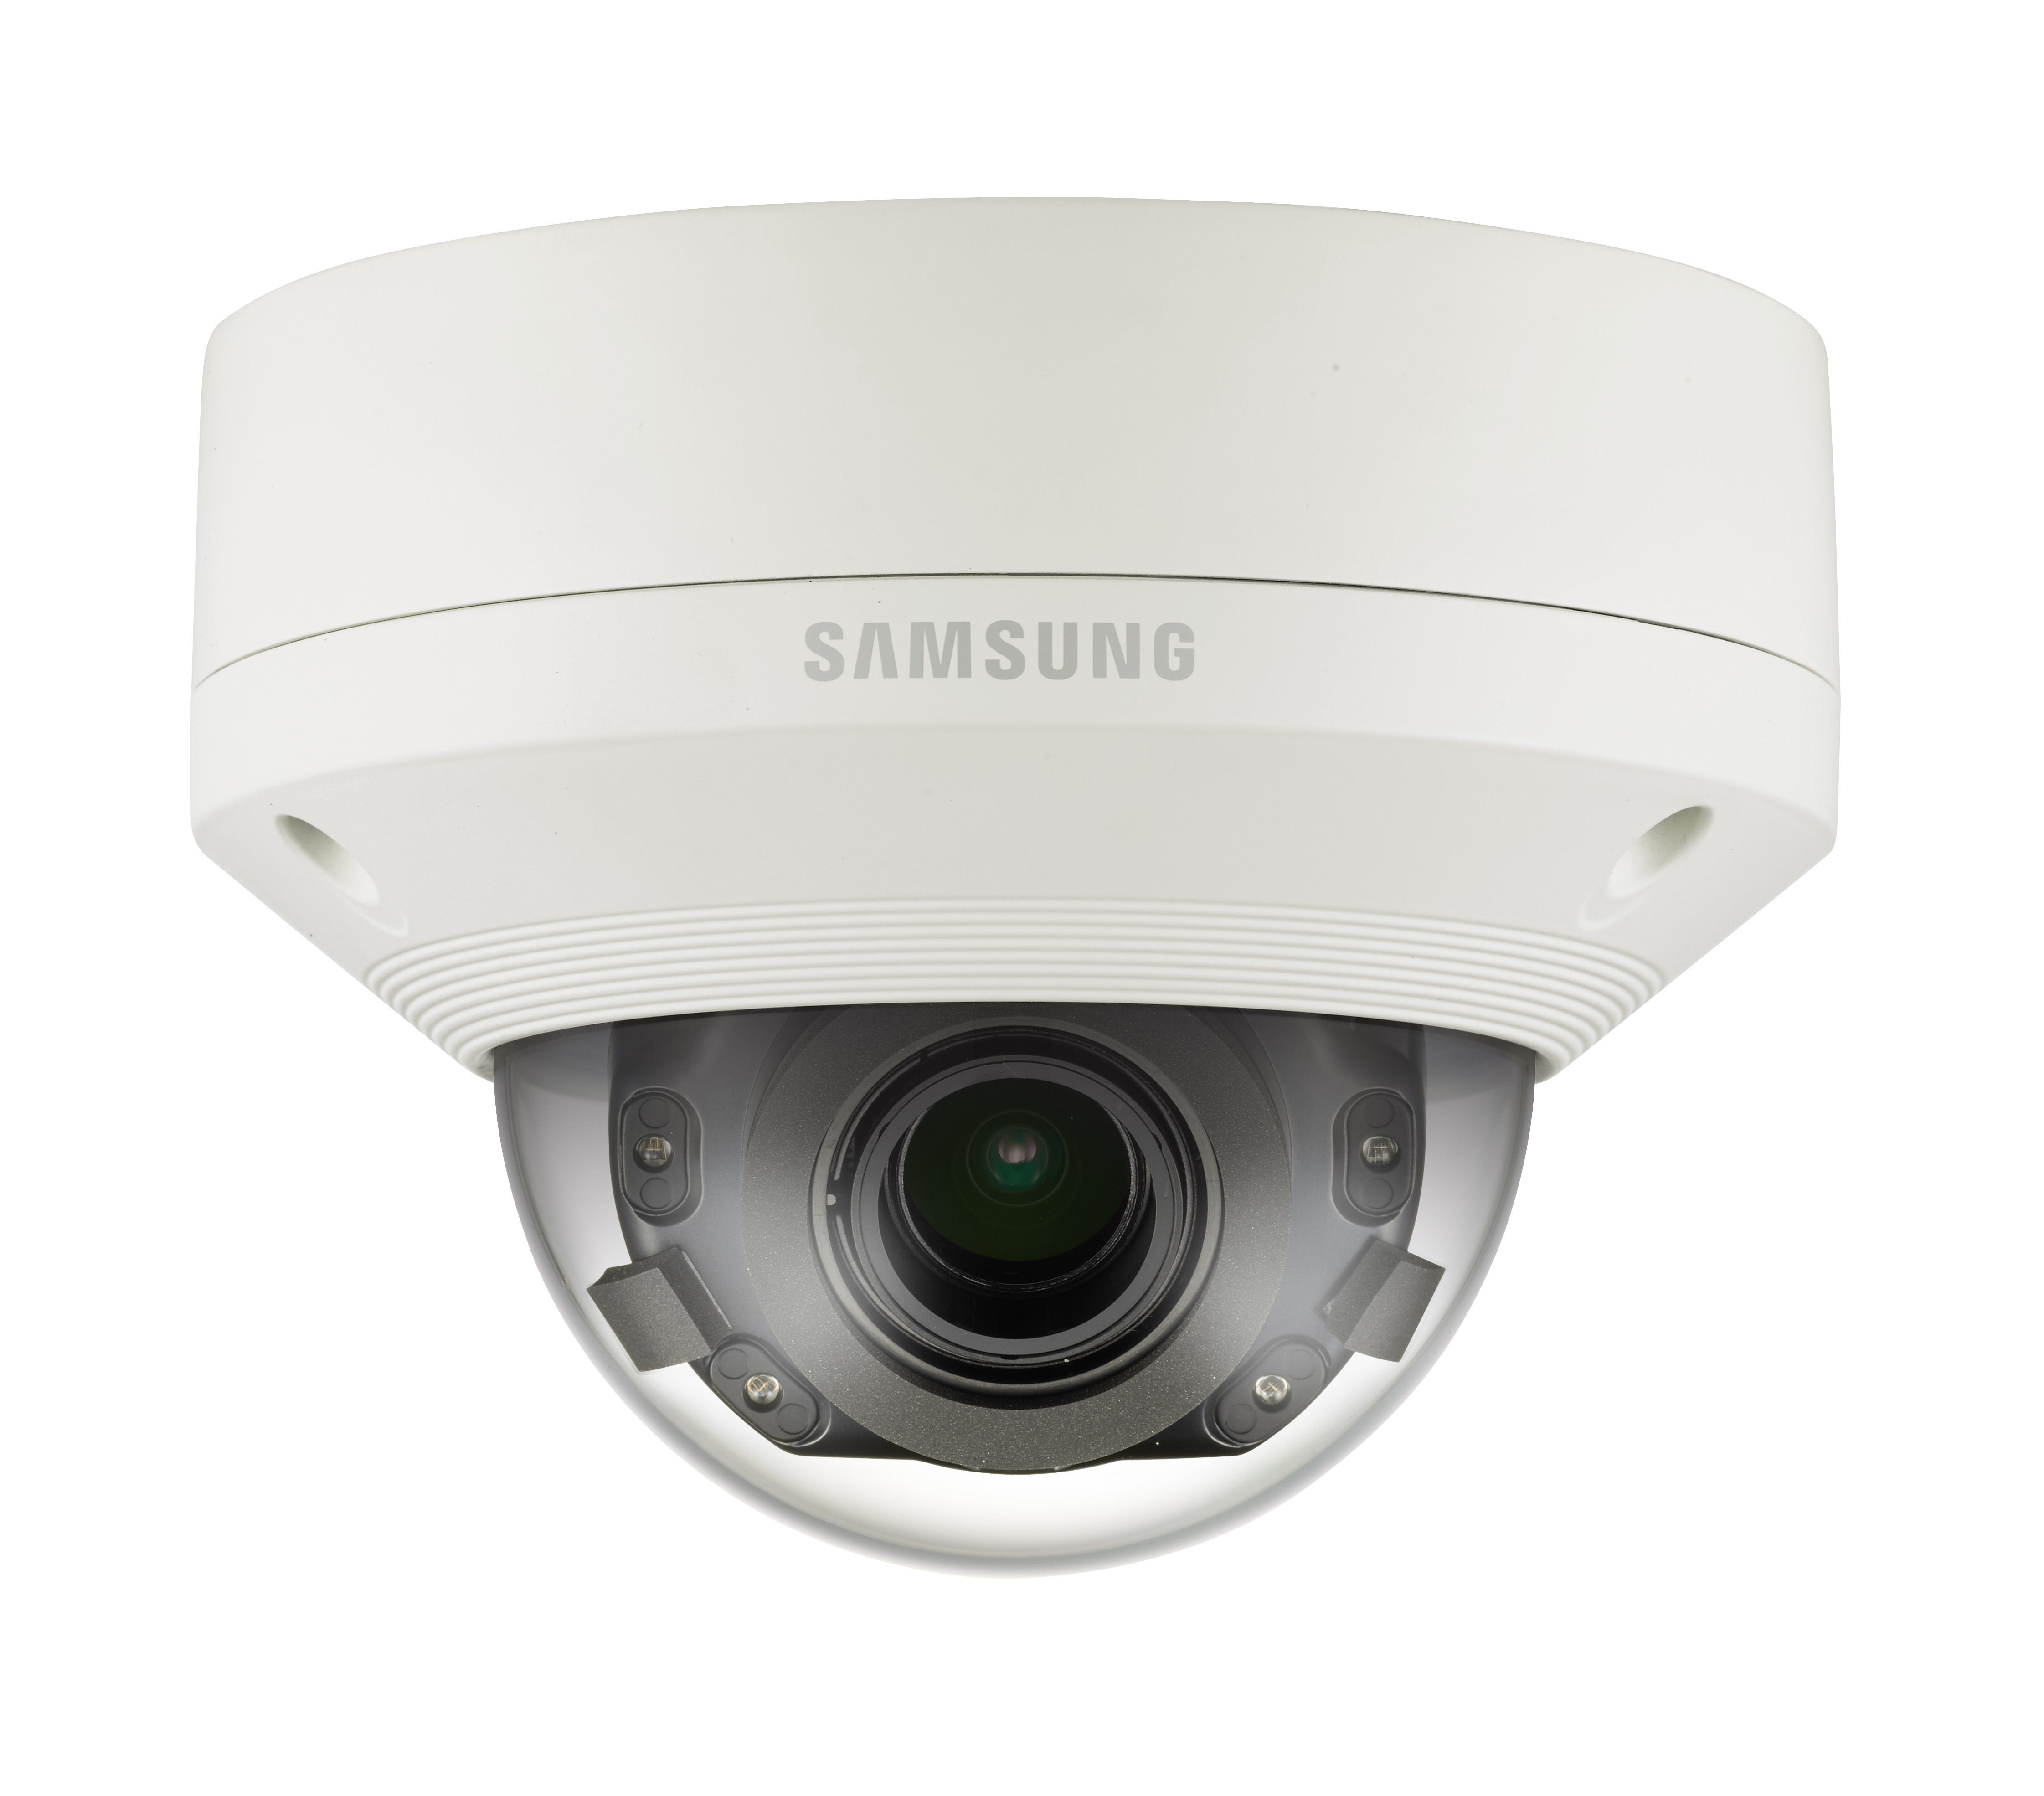 Samsung PNV-9080R 12MP